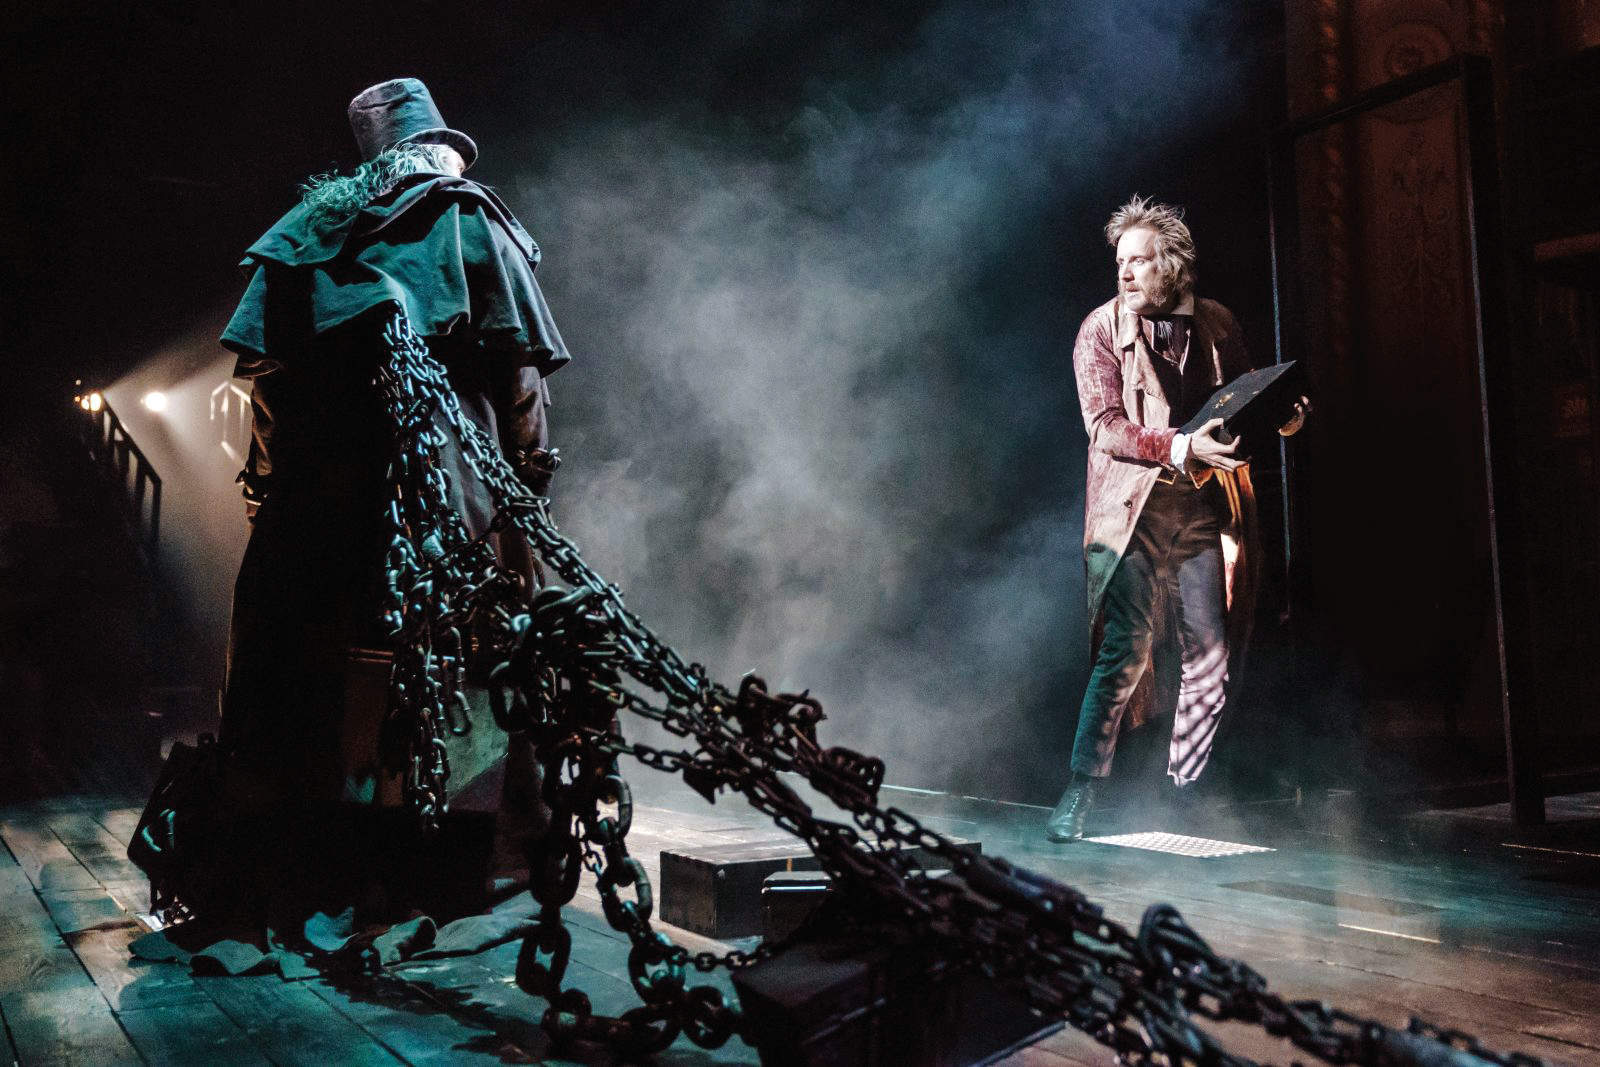 A Christmas Carol at the Old Vic: seasonal sweetness offset by more acrid notes